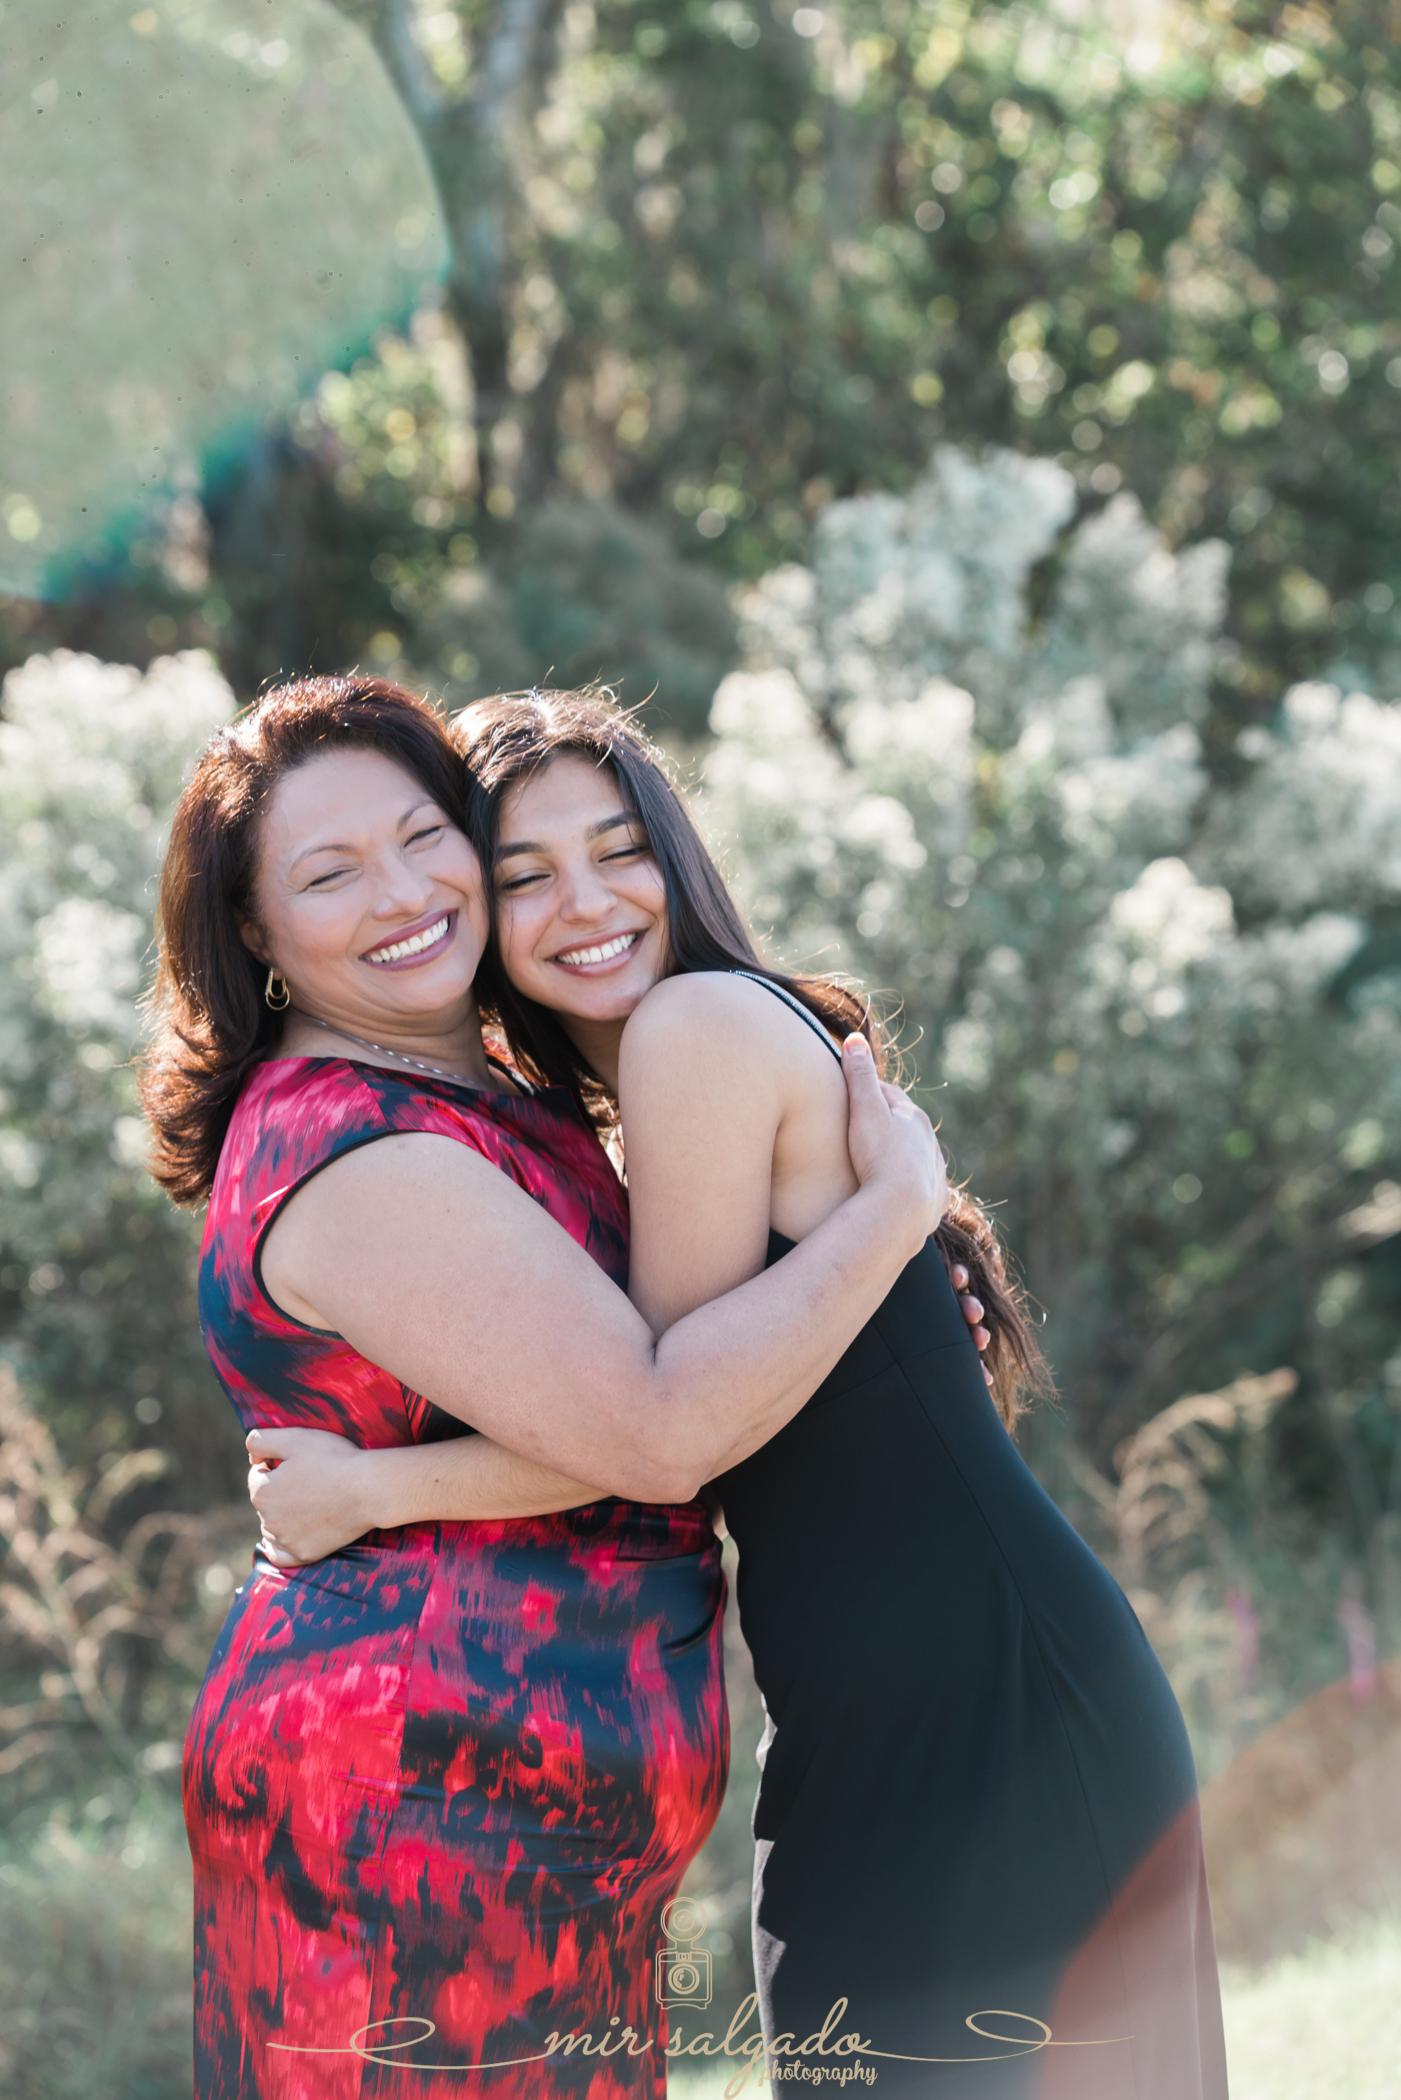 mother-and-daughter-christmas-photoshoots, tampa-mother-and-daughter-photos, tampa-christmas-family-photographer, tampa-christmas-photographer